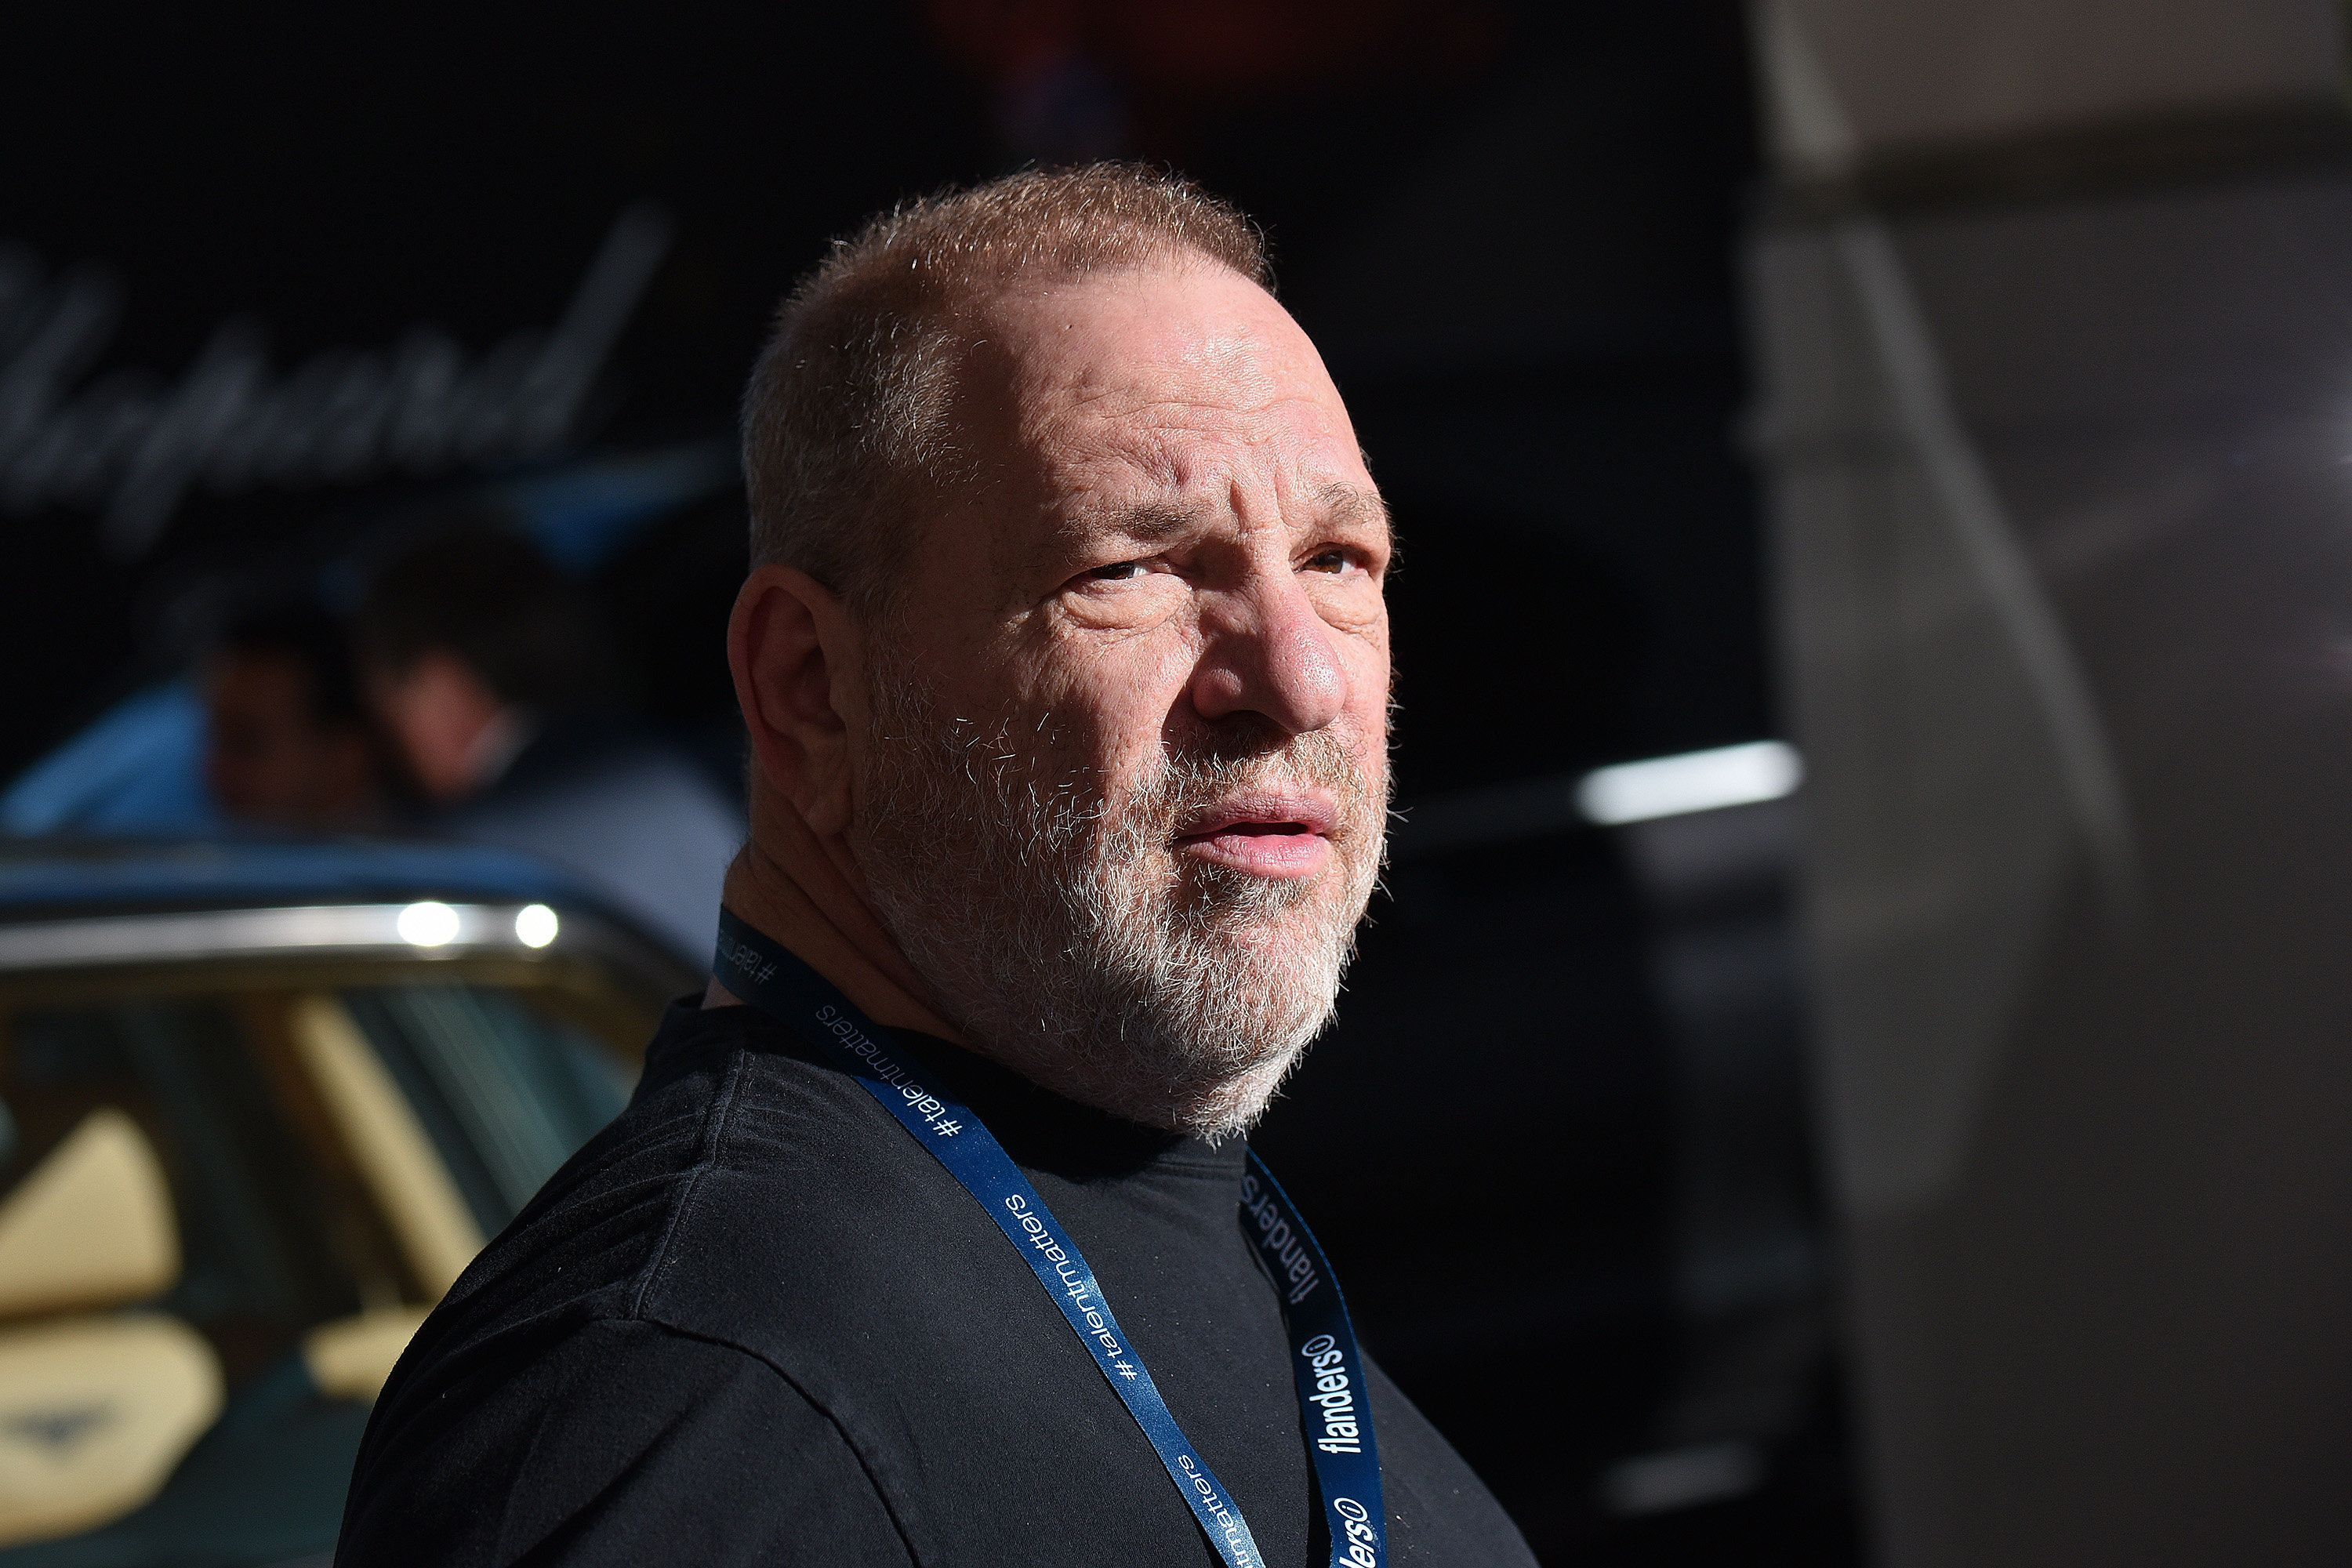 CANNES, FRANCE - MAY 19: Harvey Weinstein is spotted at Hotel Martinez during the 70th annual Cannes Film Festival at  on May 19, 2017 in Cannes, France.  (Photo by Jacopo Raule/GC Images)